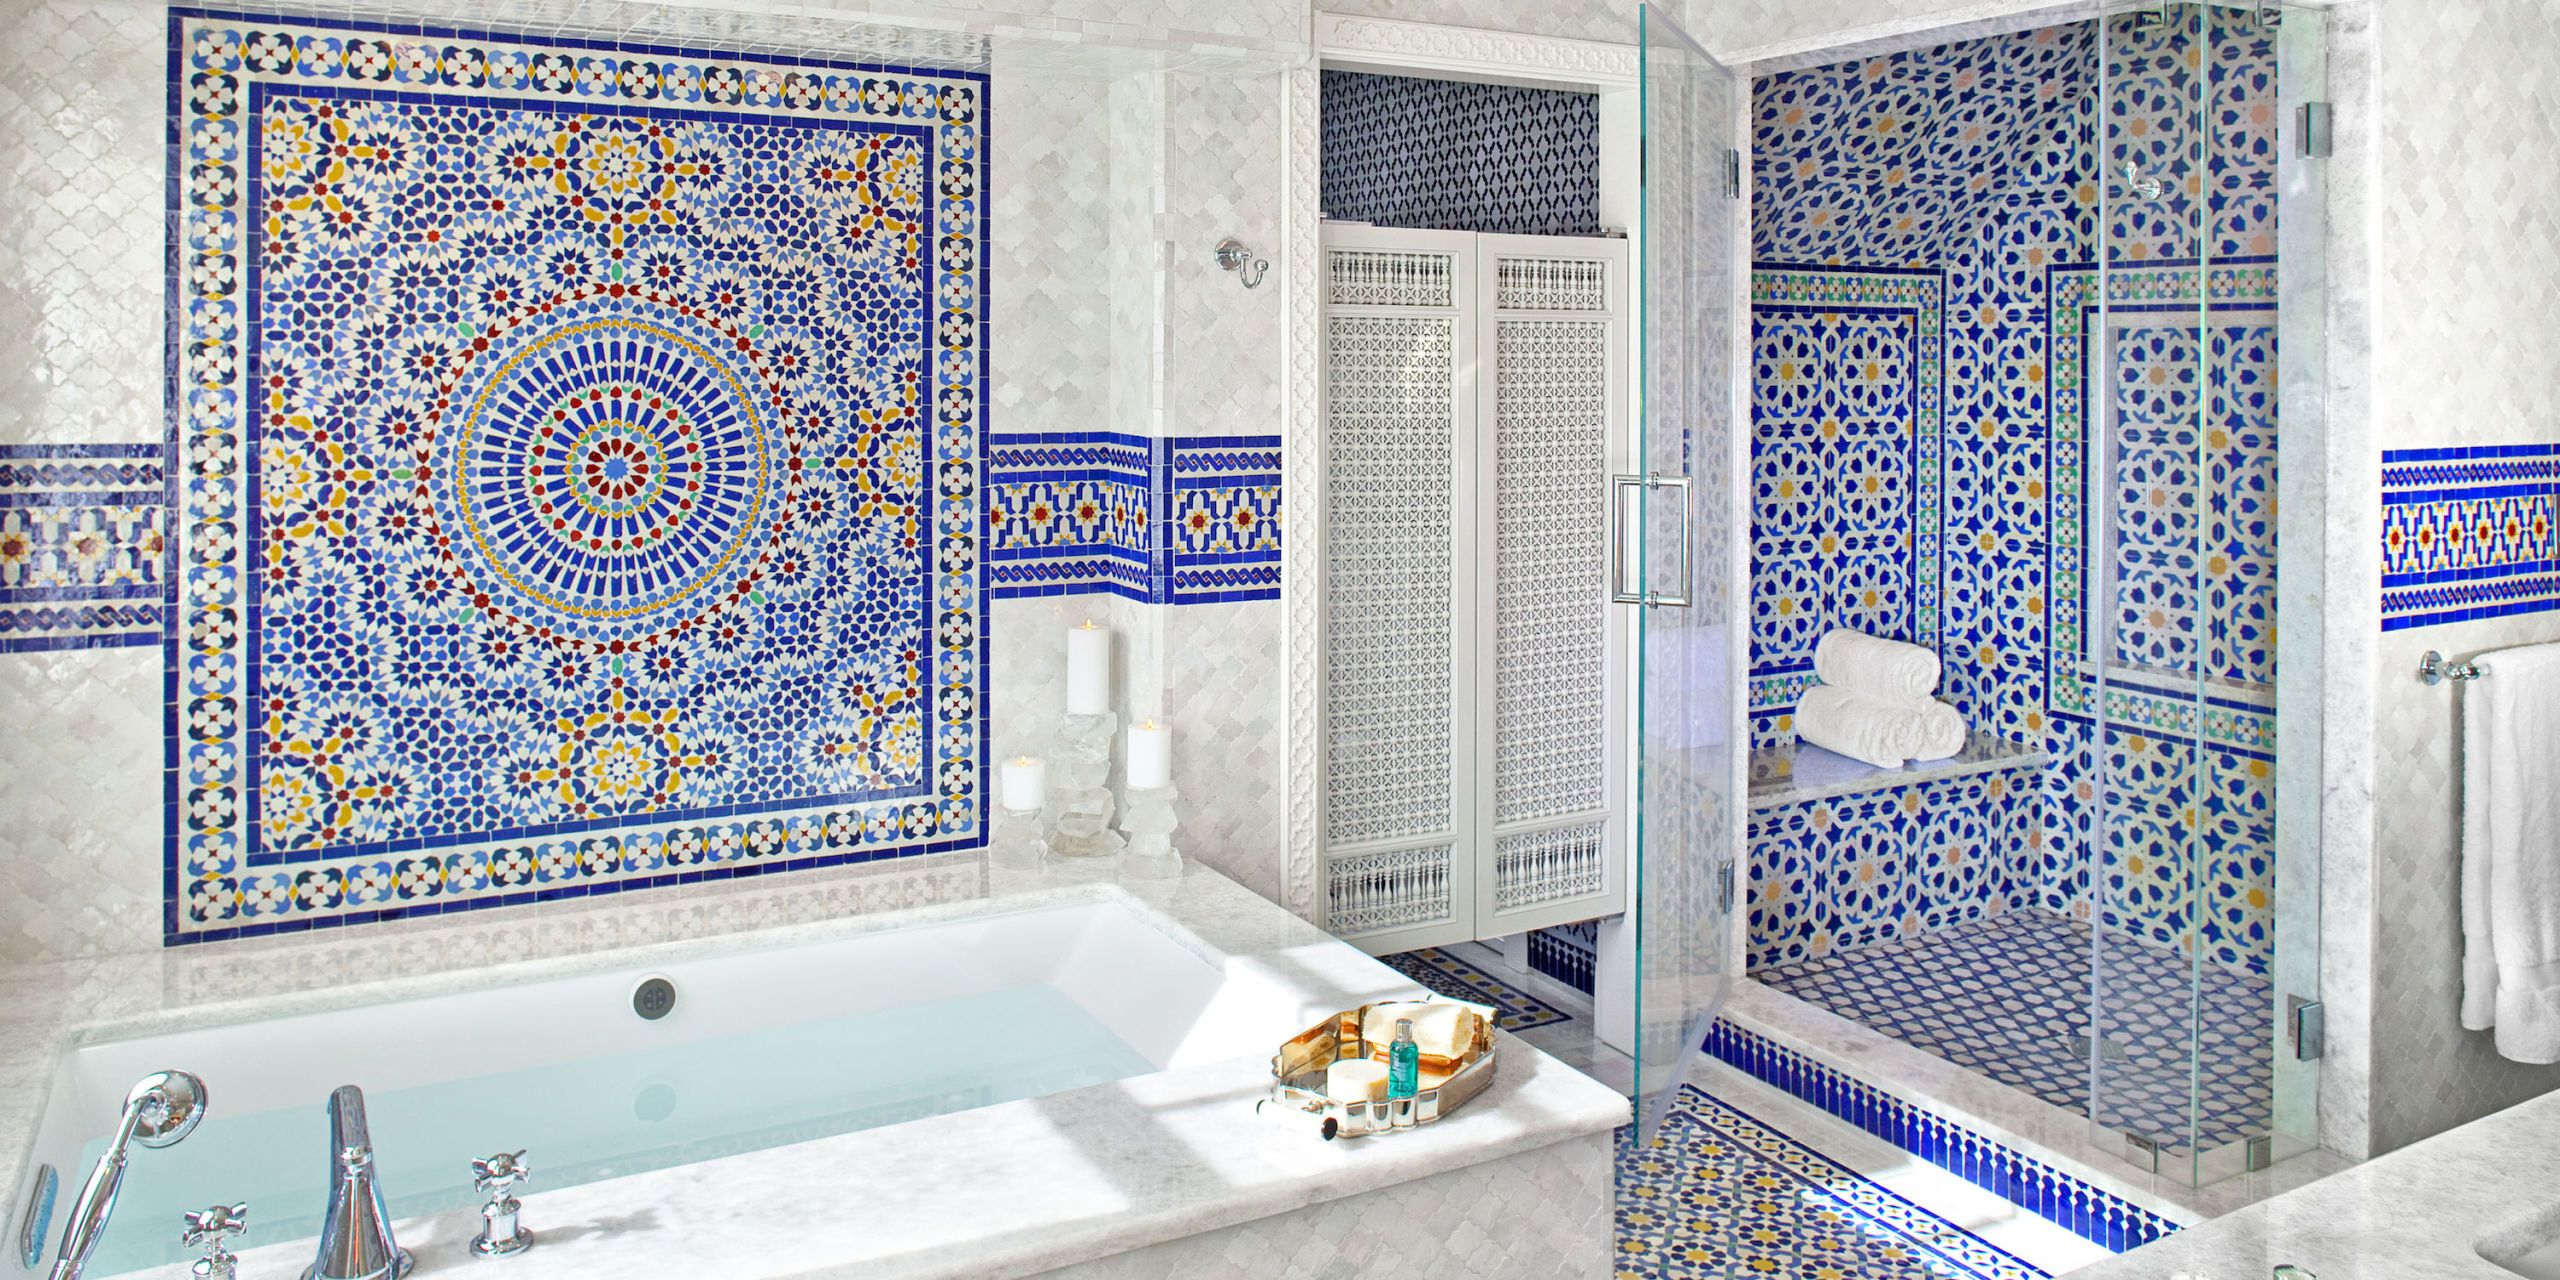 Merveilleux 48 Eye Catching Bathroom Tile Ideas